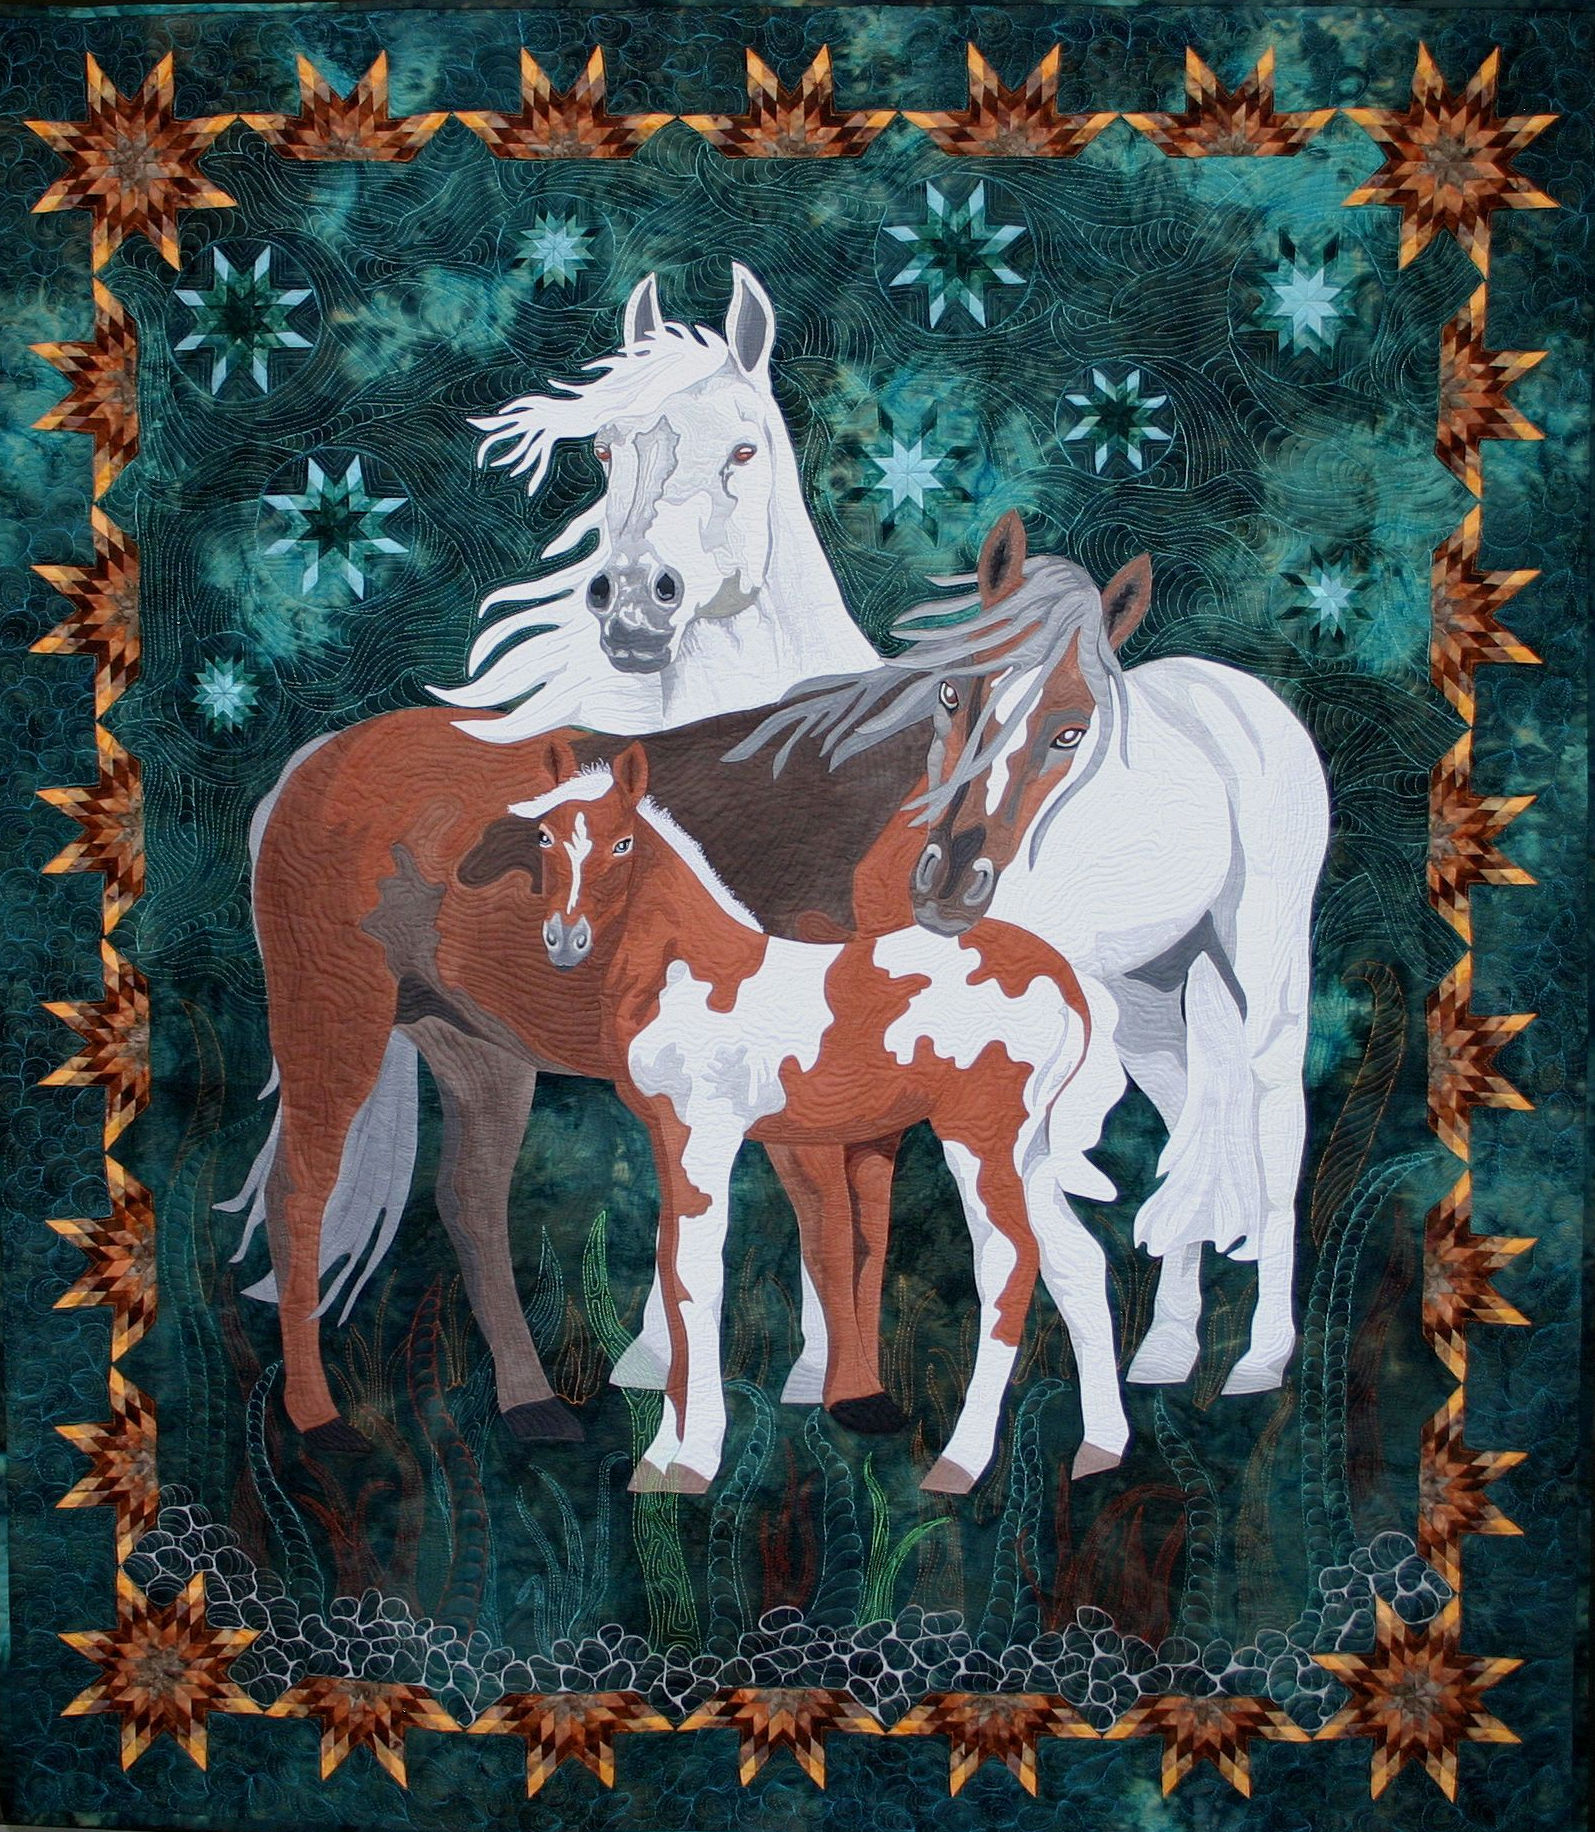 Beauty of the Beast is a fiber art work showing a family of horses the father standing strong the mother leaning to protect her baby and a colt as cute as can be beside them. this was a juried finalist in the Houston International Quilt Show in 2013